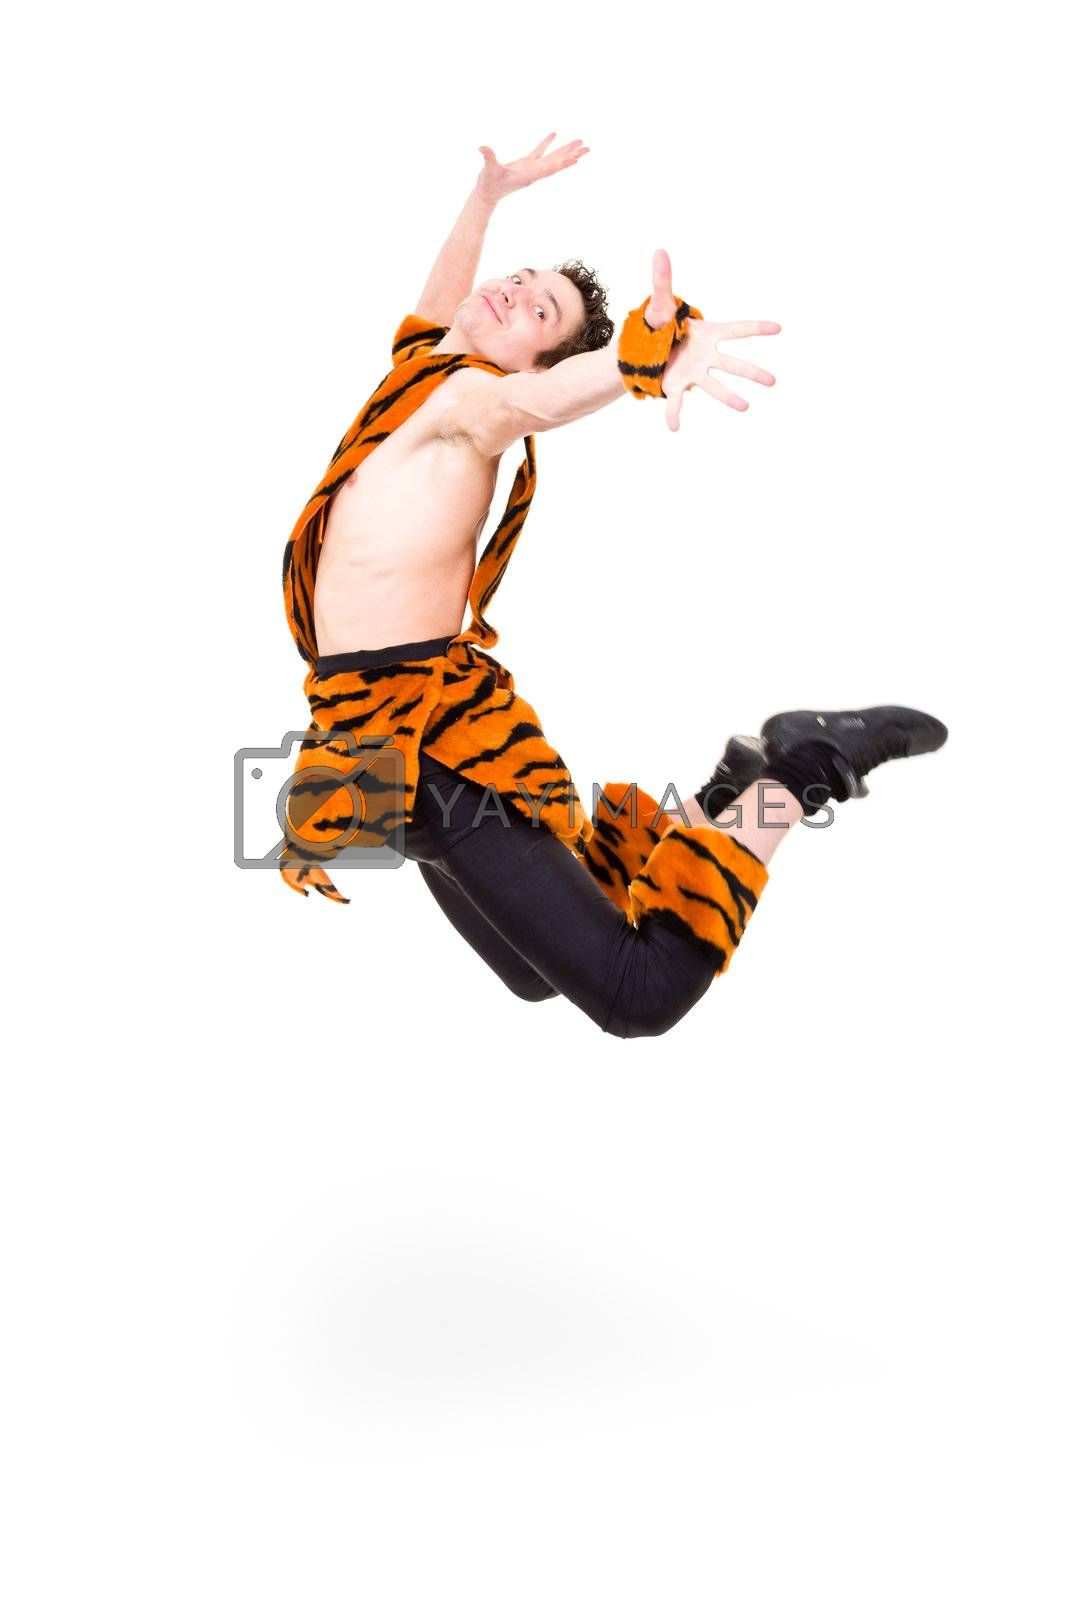 Wild man wearing a tiger fur jumping against isolated white background